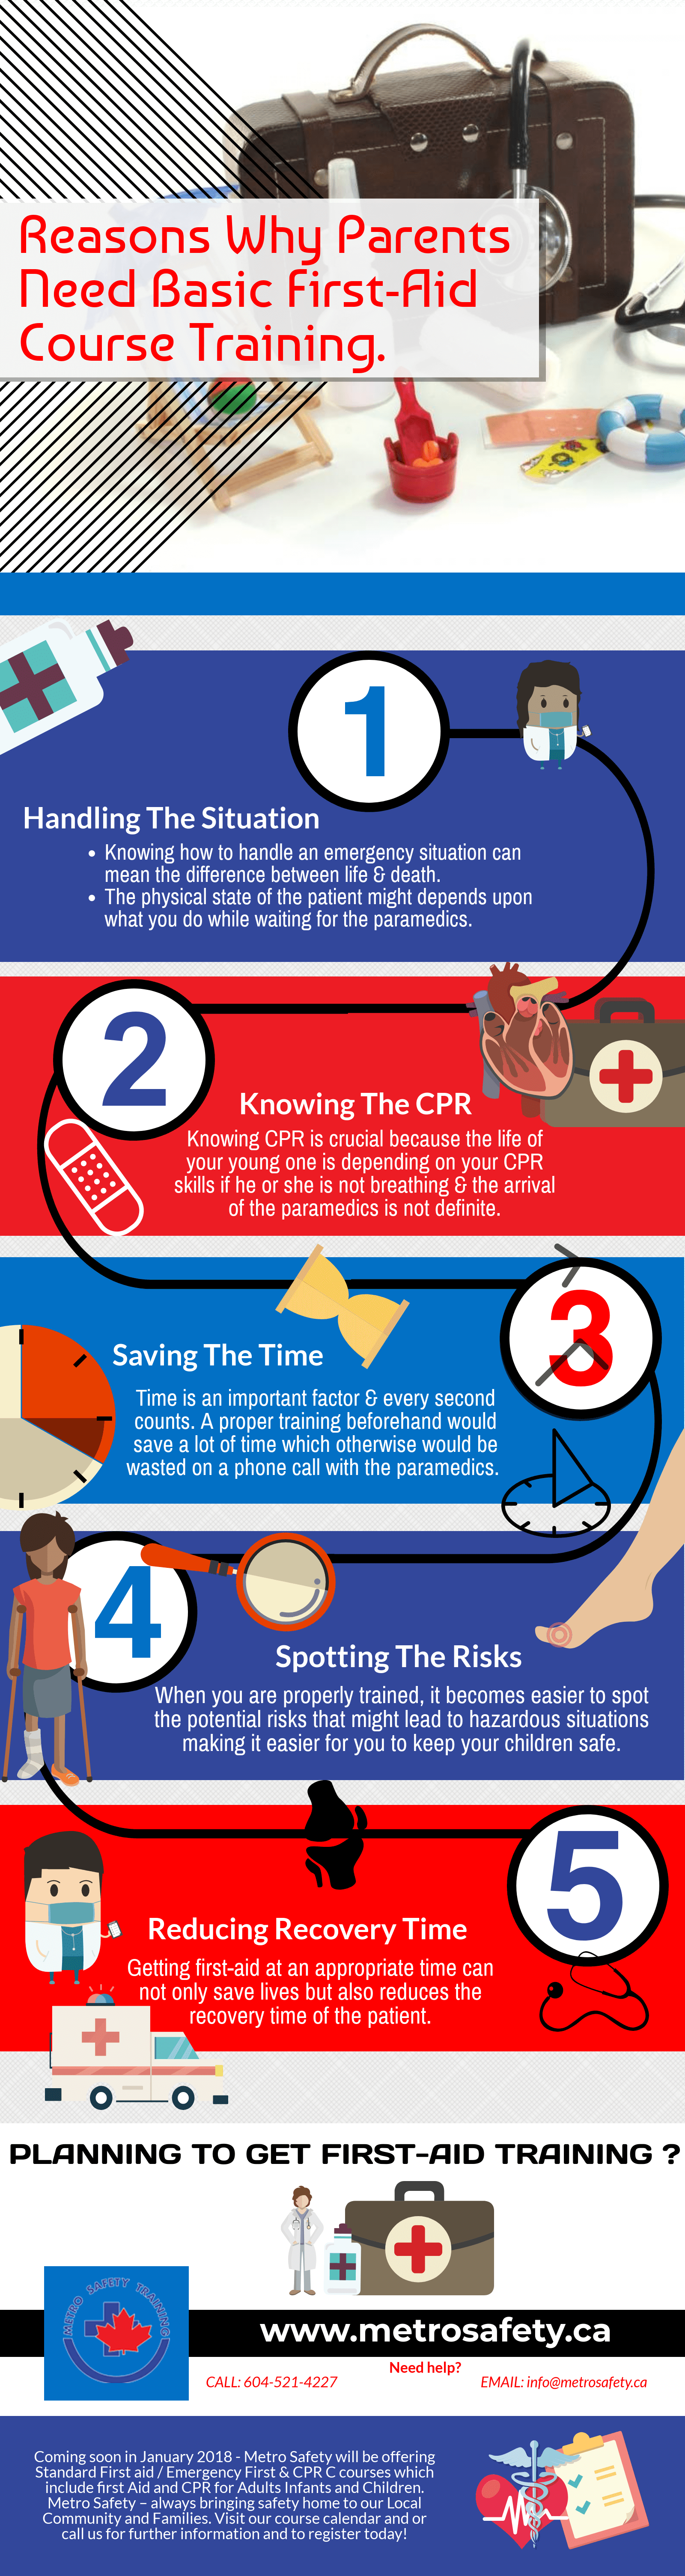 Reasons Why Parents Need Basic First-Aid Course Training